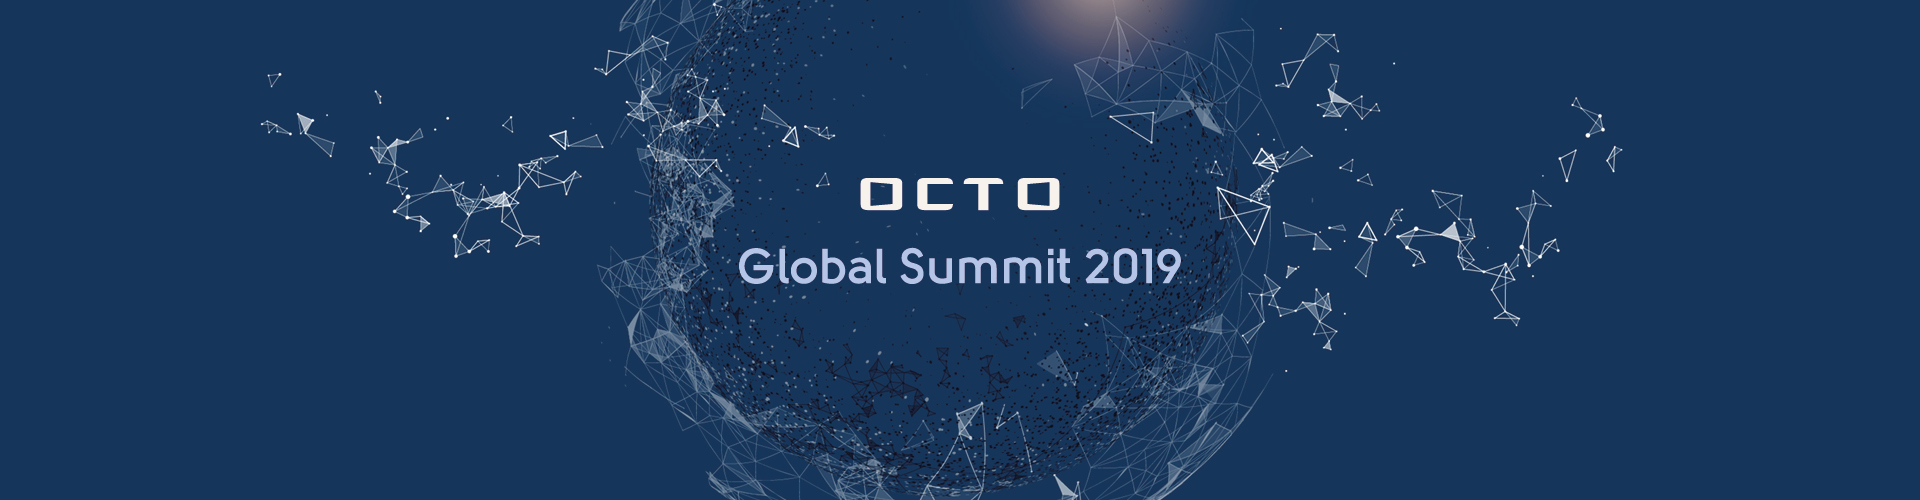 Save the Date | Octo Global Summit 2018